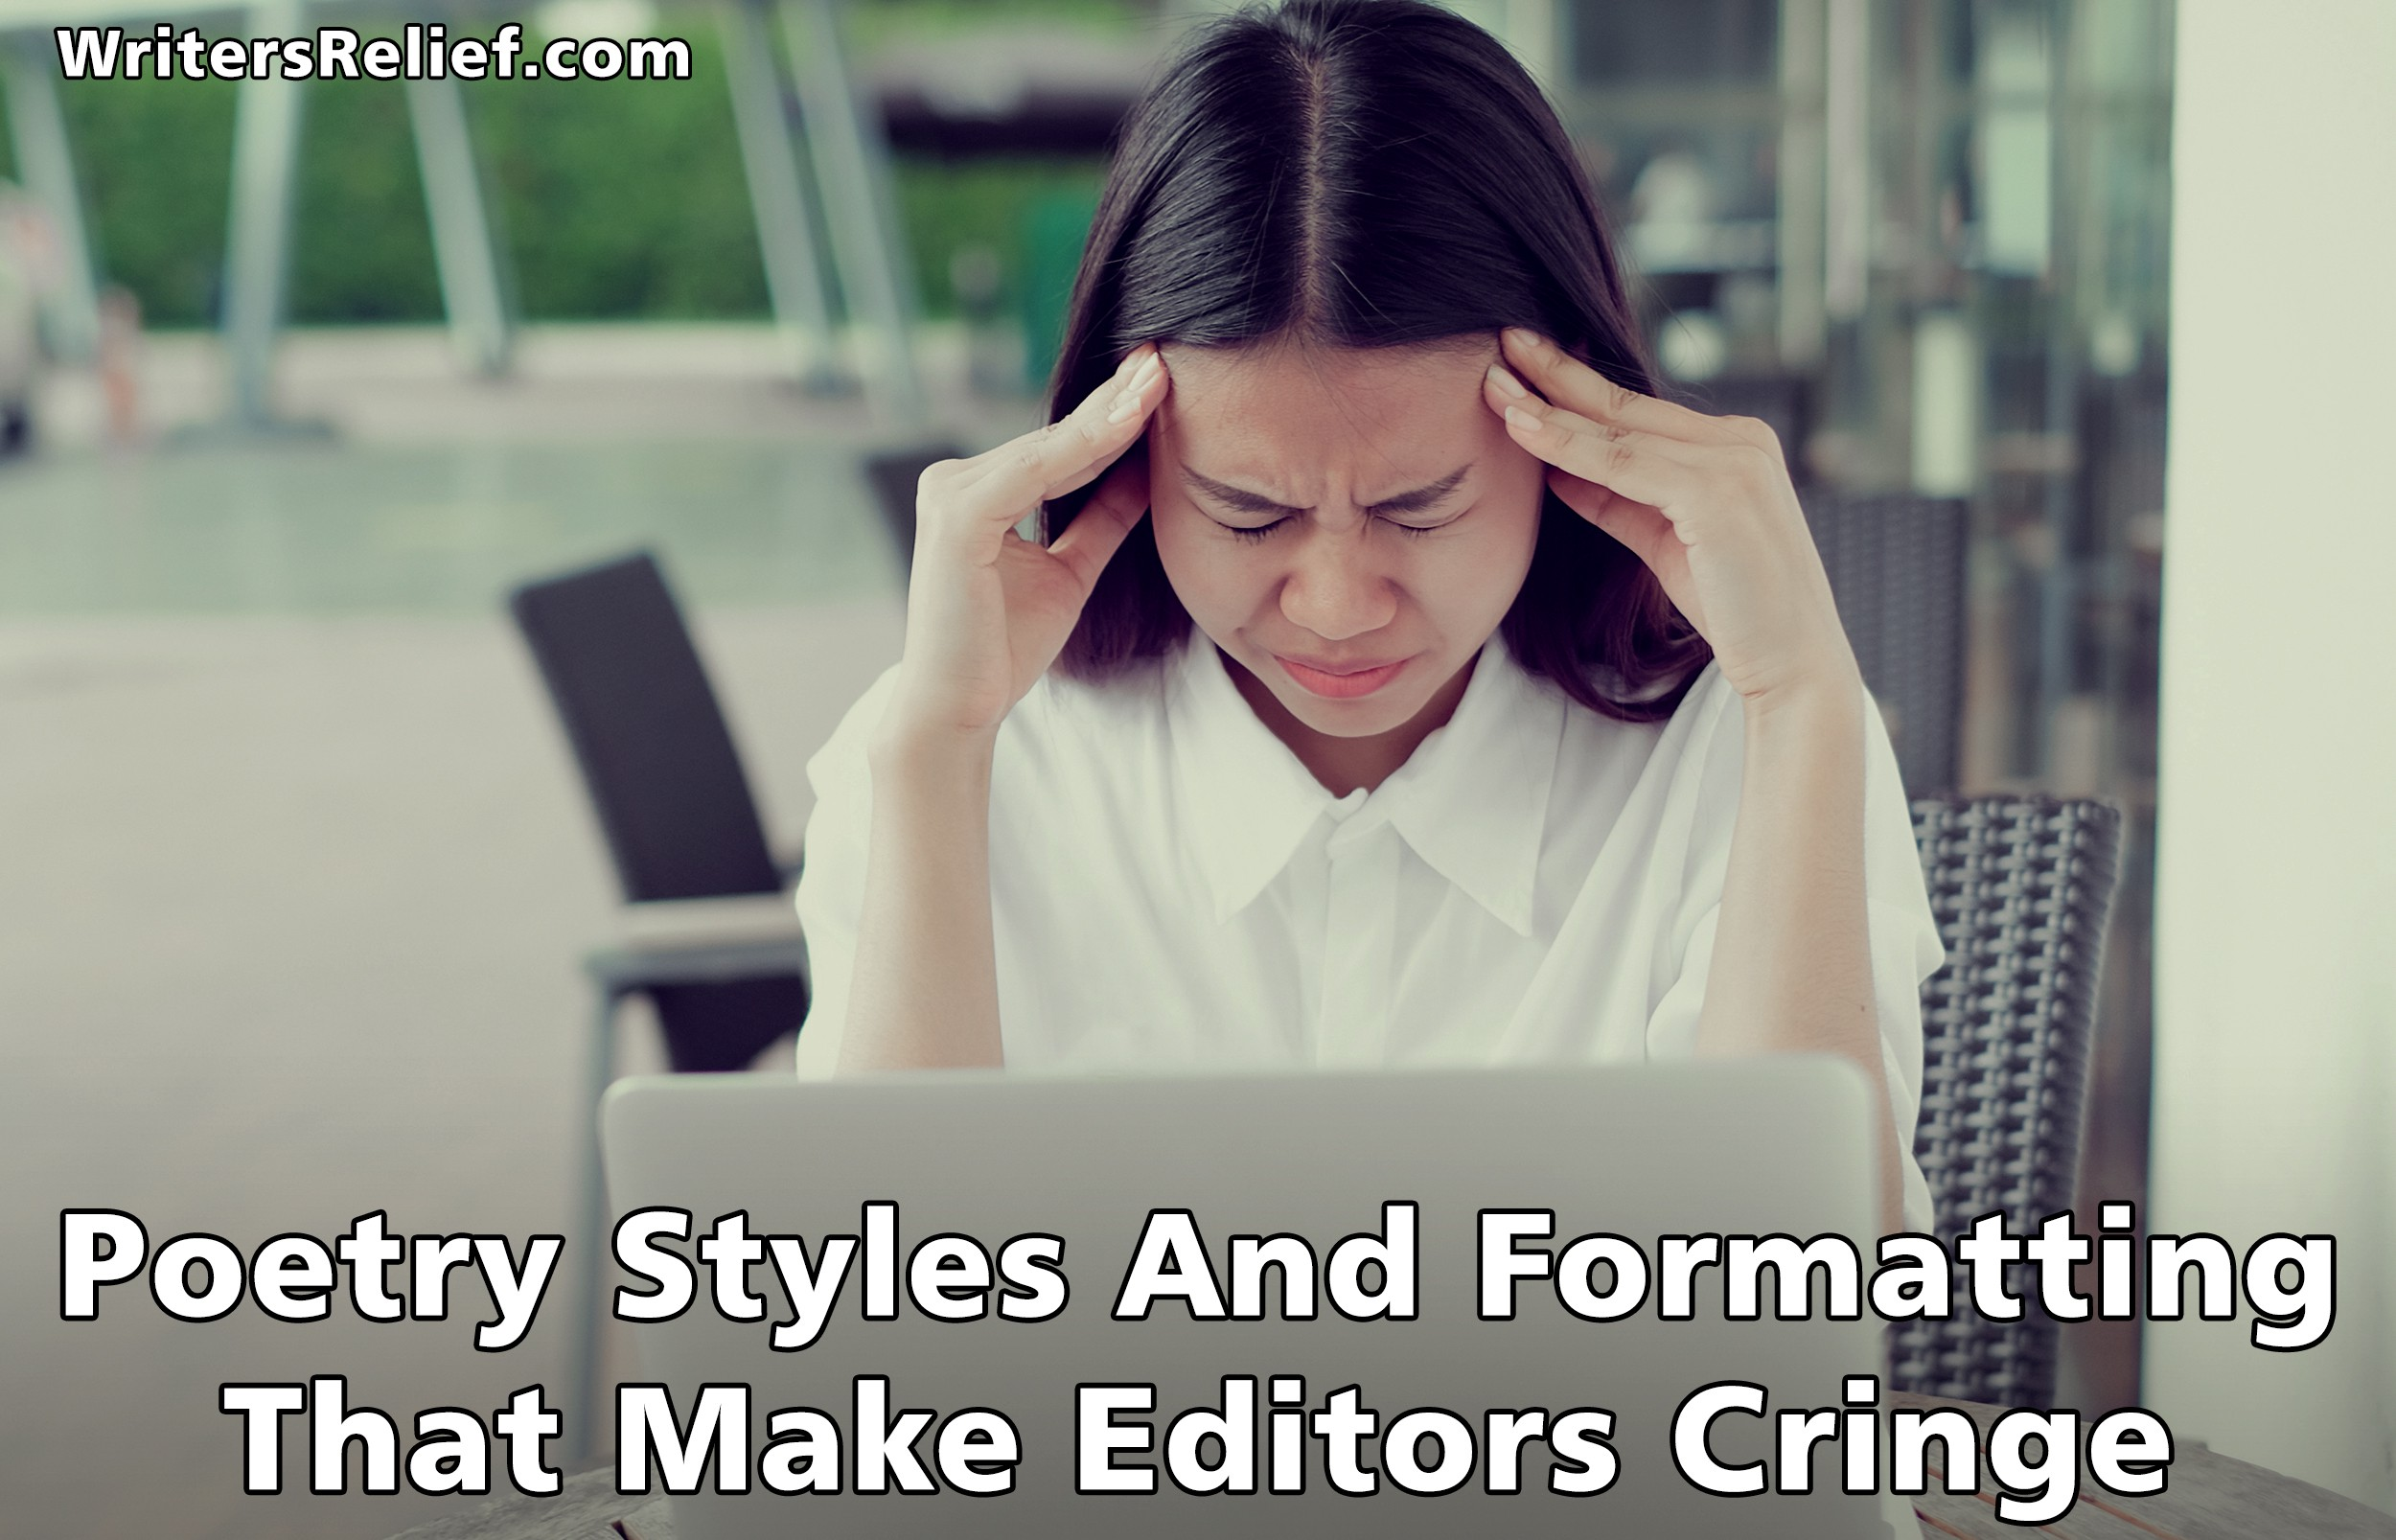 Poetry Styles And Formatting That Make Editors Cringe